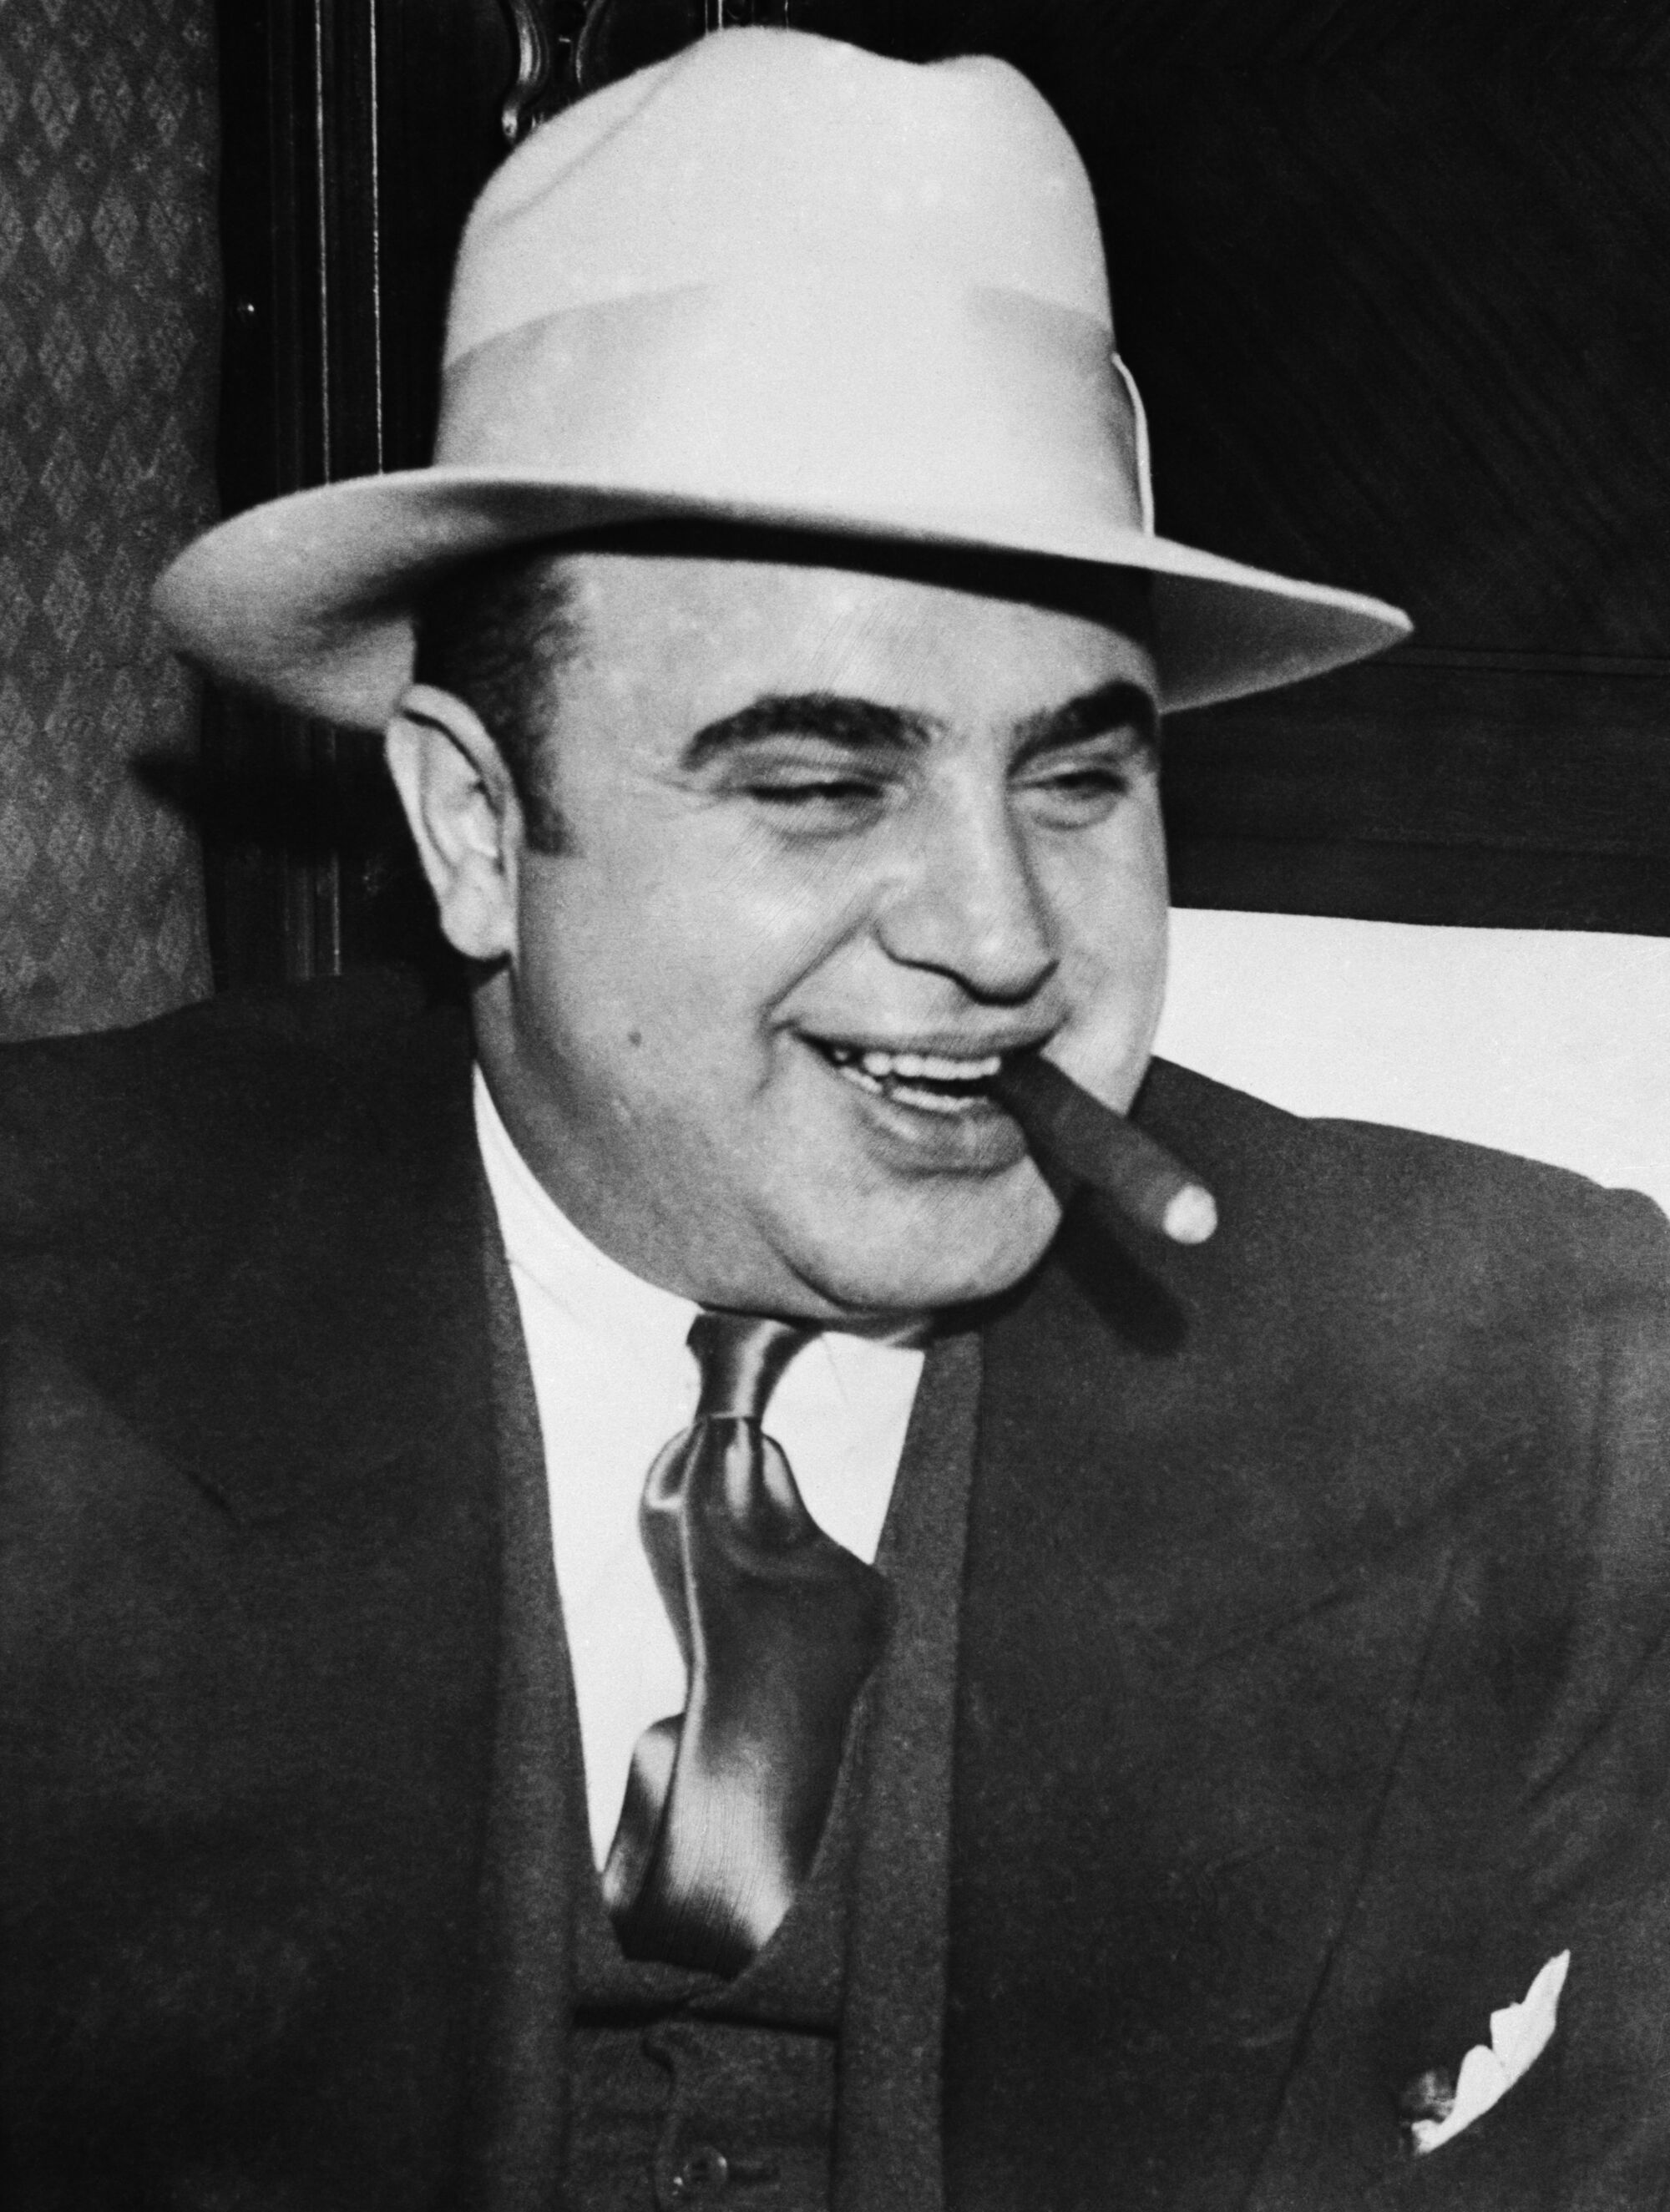 a biography of alphonse capone an american gangster who attained fame during the prohibition era Alphonse capone - revolvy was an american gangster who attained fame during the prohibition era as the co untold story from called egan's rats in his hometown of st louis .